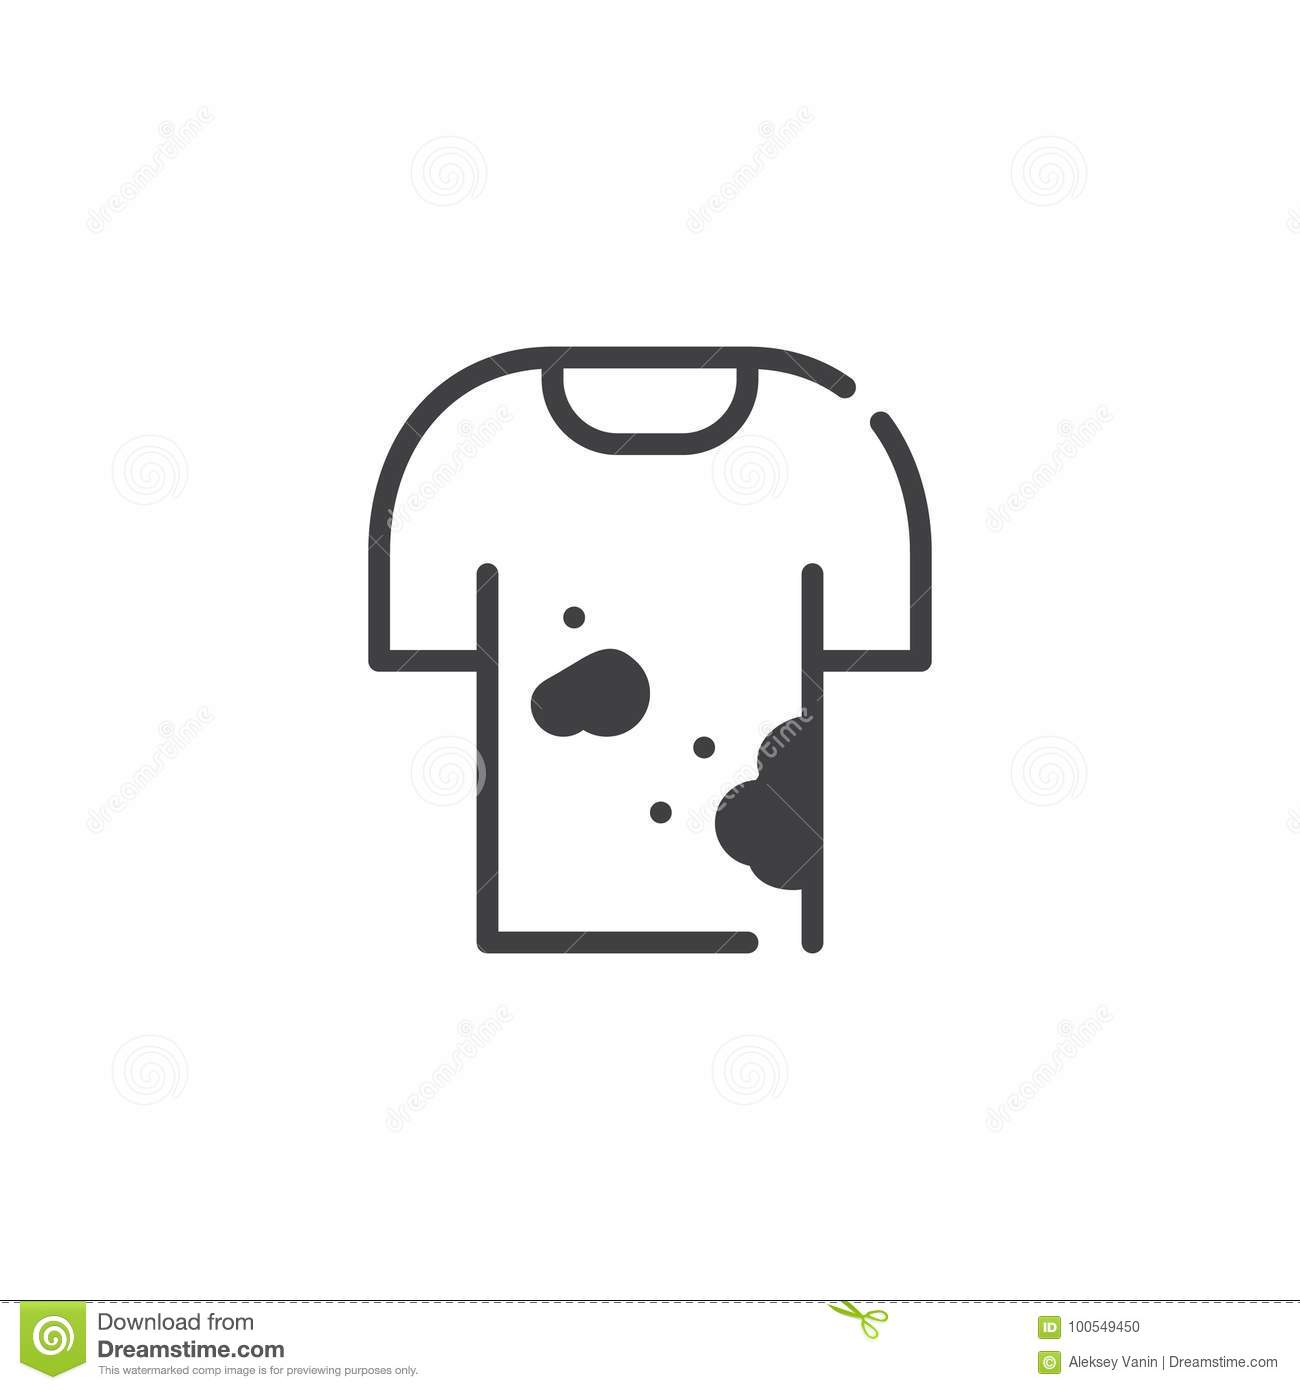 icon shirt stock illustrations 144 571 icon shirt stock illustrations vectors clipart dreamstime https www dreamstime com dirty shirt icon vector filled flat sign solid pictogram isolated white symbol logo illustration image100549450